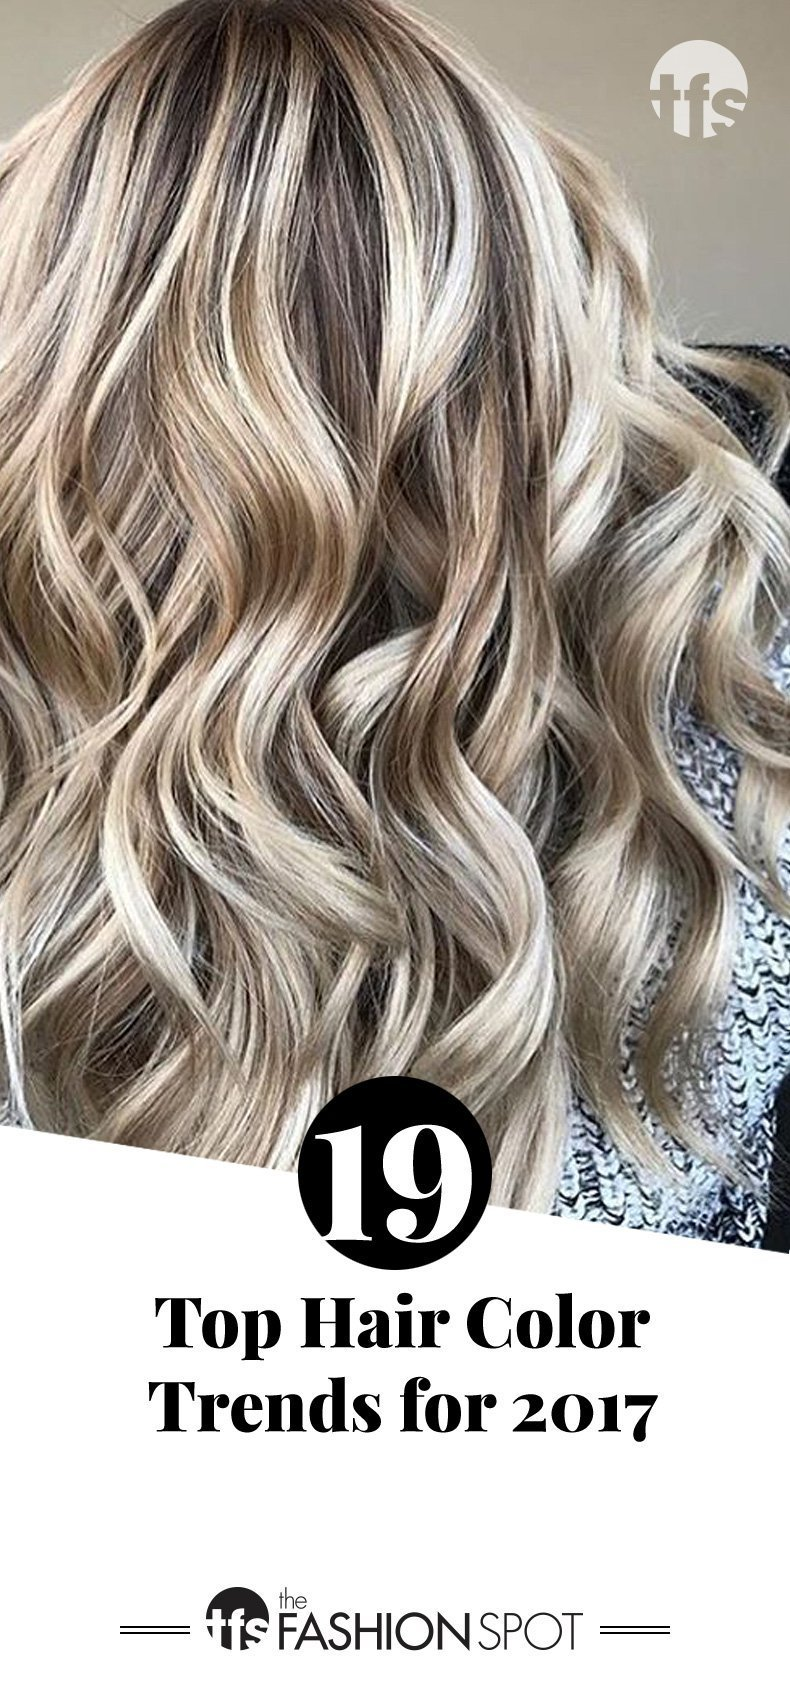 New Most Popular Hair Color Trends 2017 Top Hair Stylists Ideas With Pictures